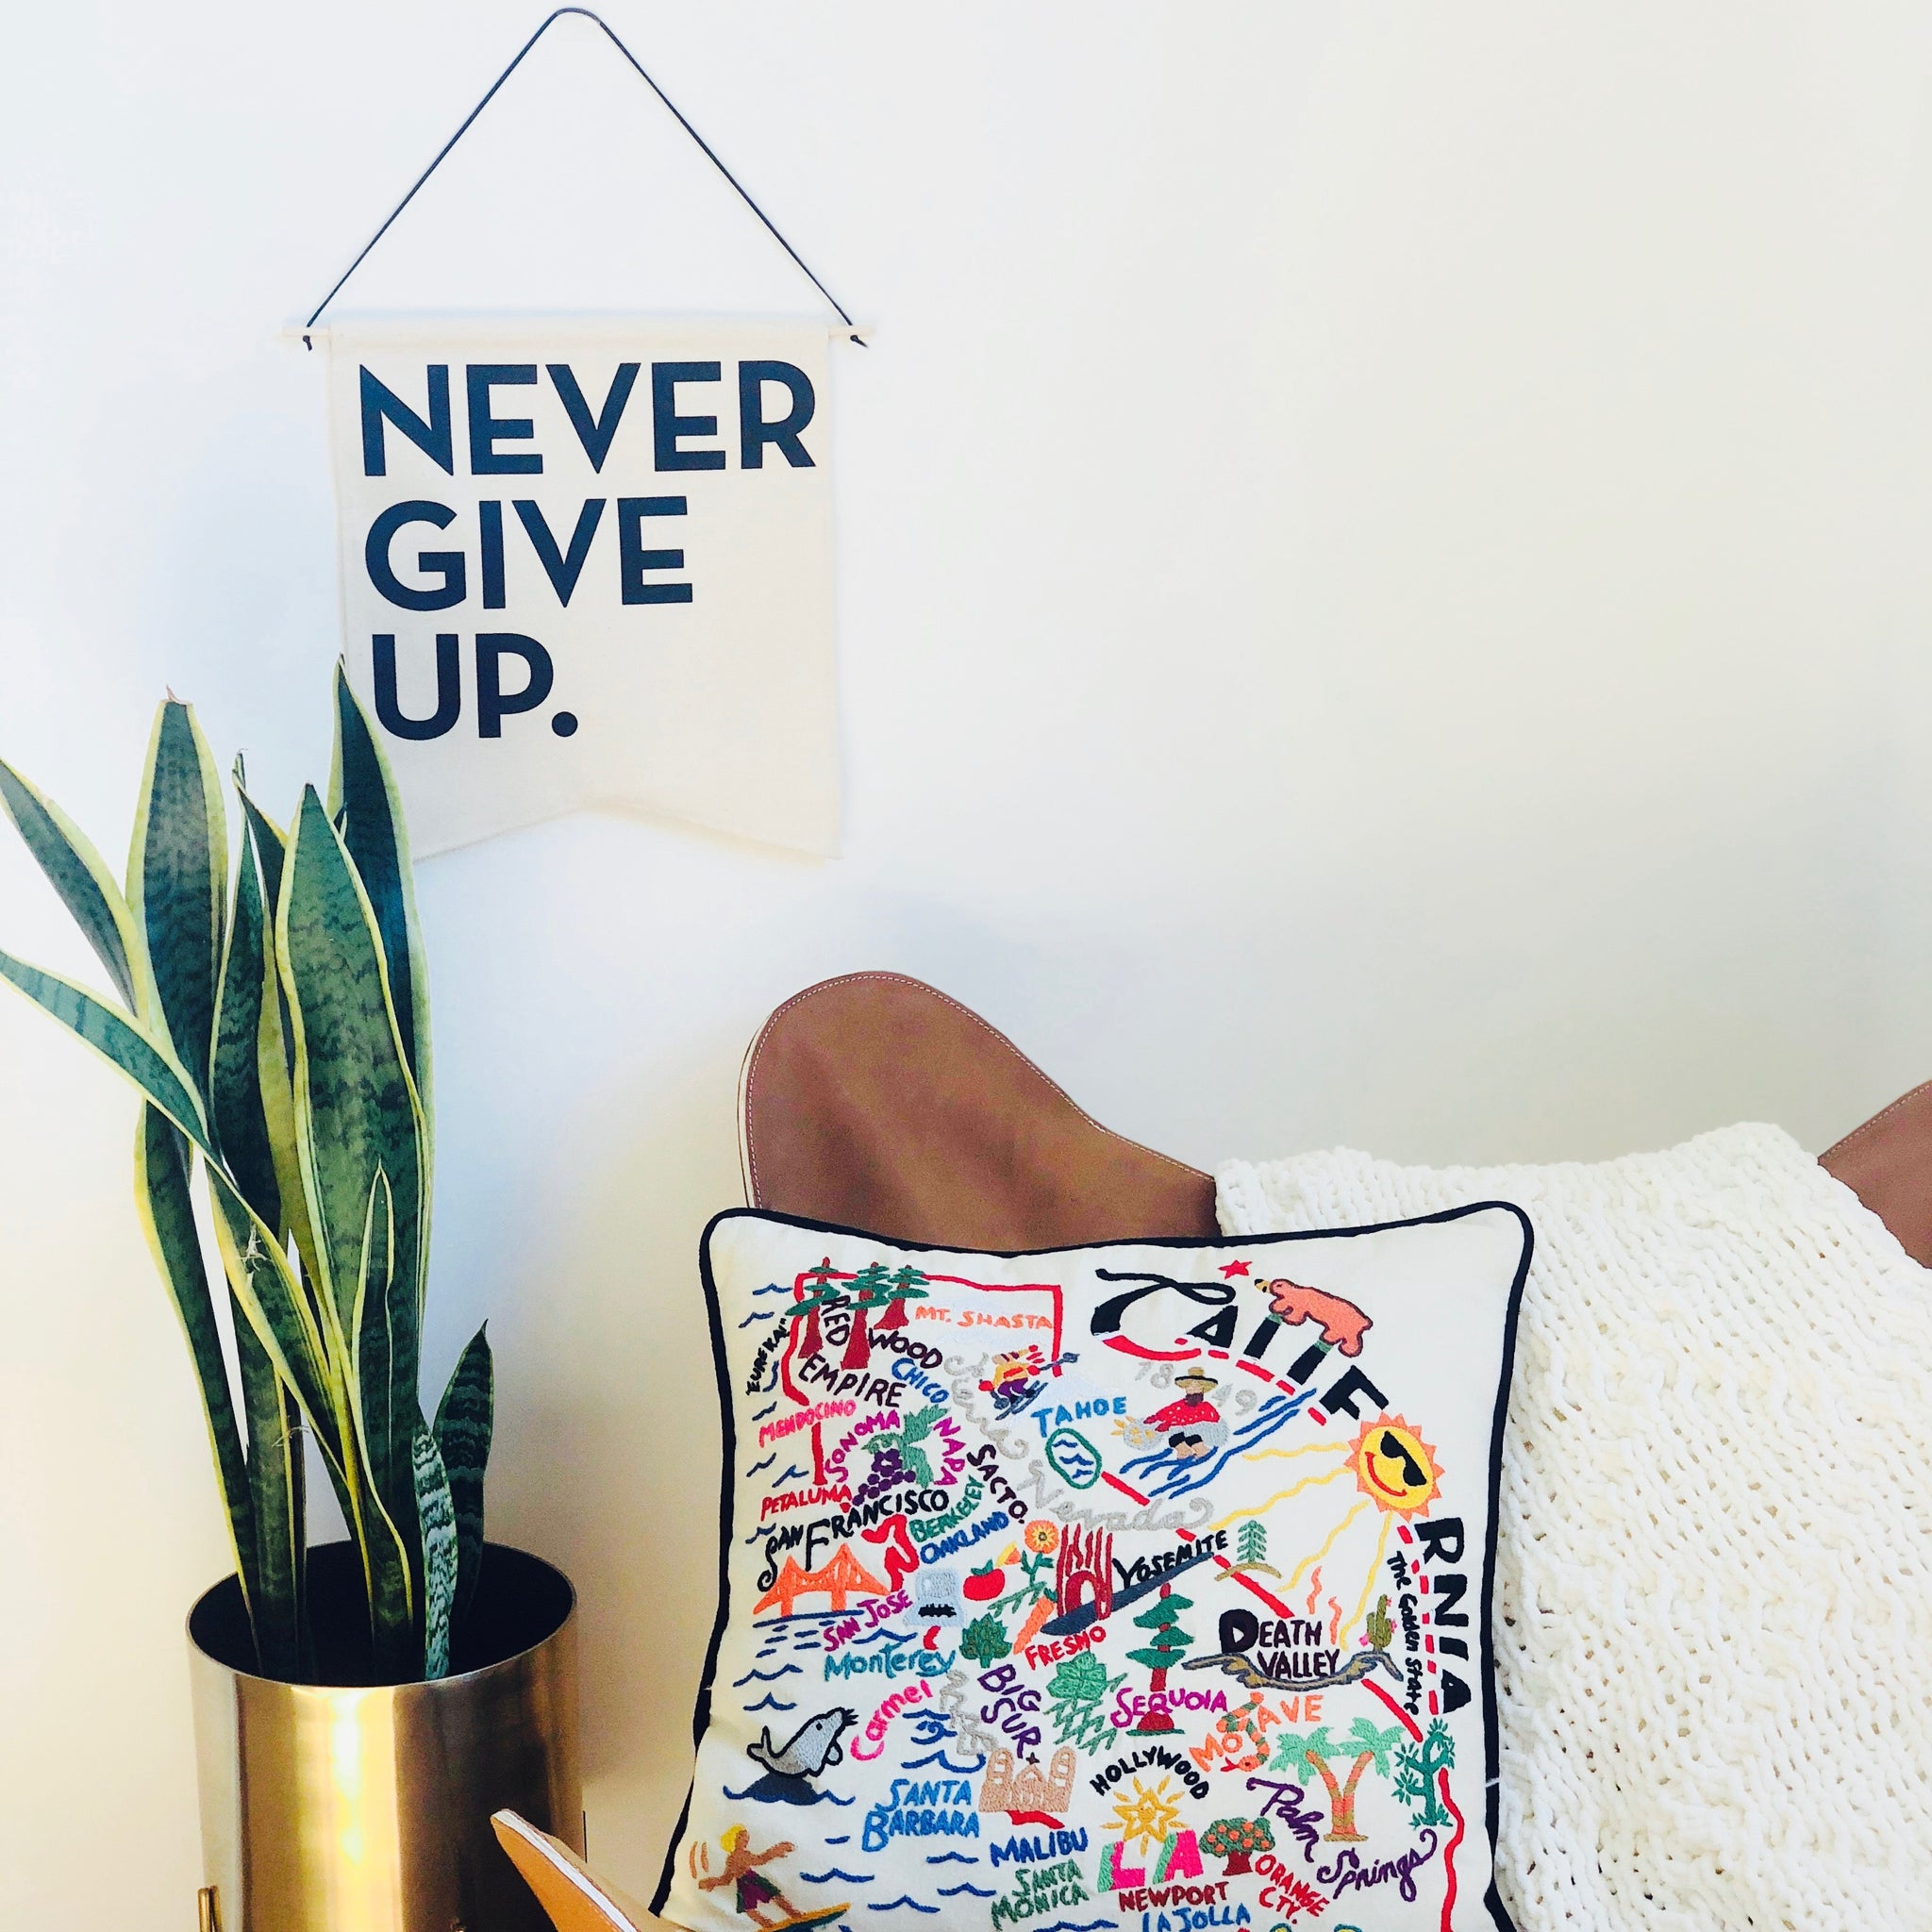 NEVER GIVE UP. CANVAS BANNER